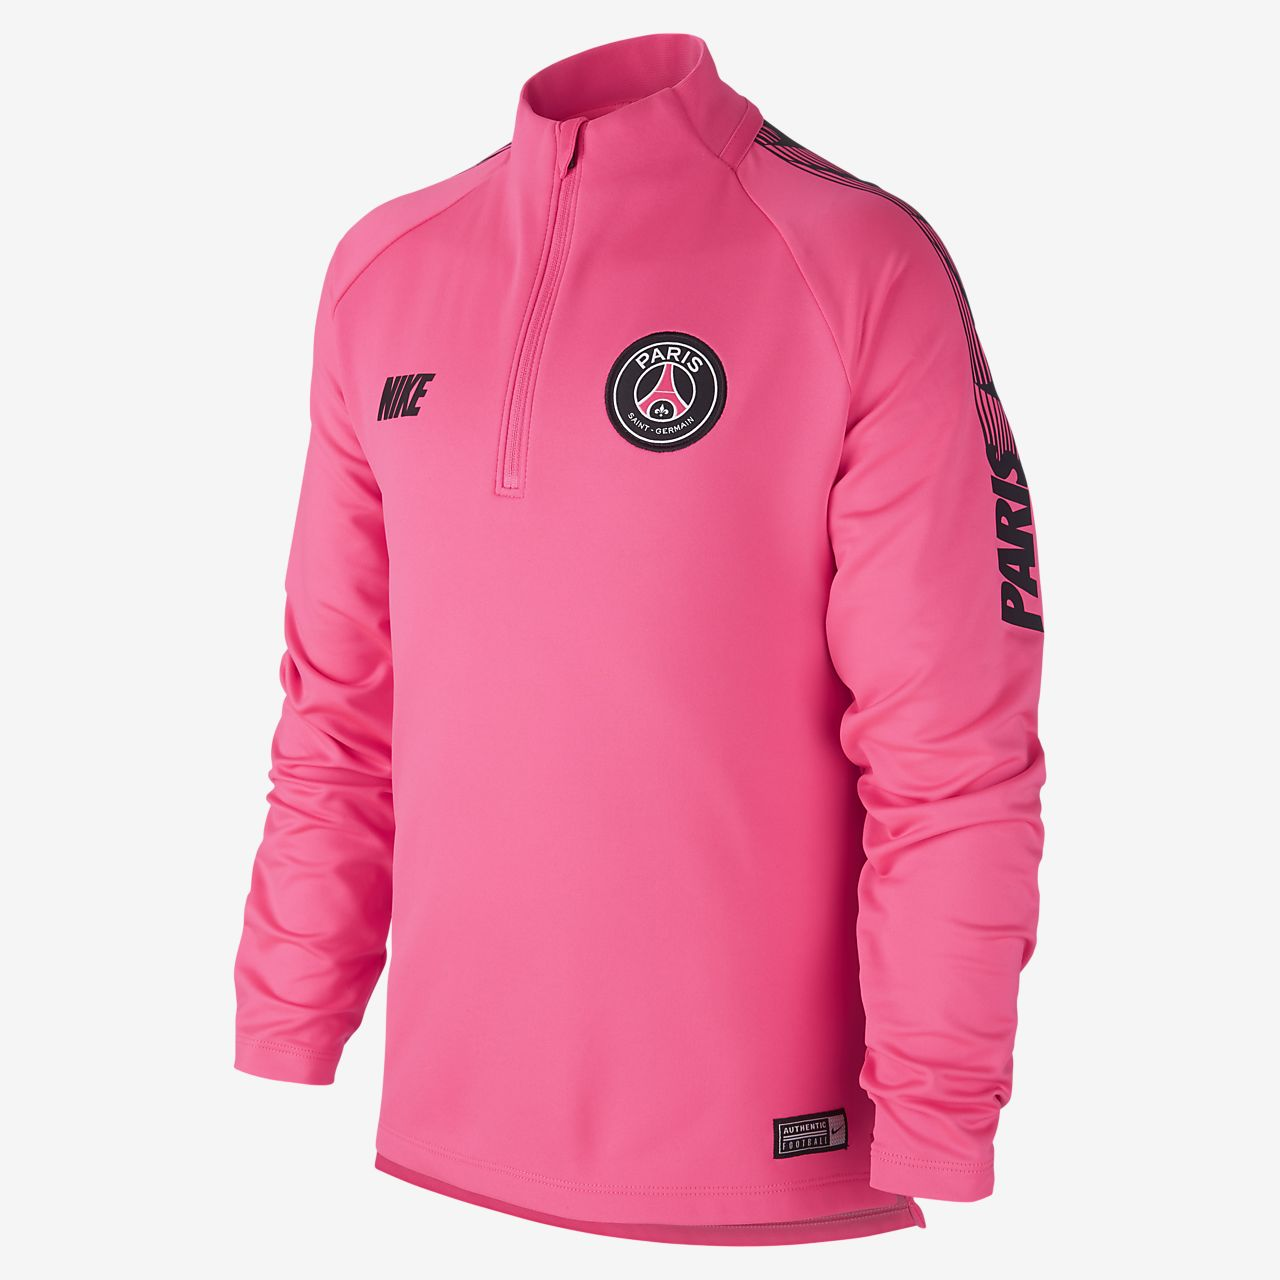 Nike Dri-FIT Paris Saint-Germain Squad Older Kids' Drill Top